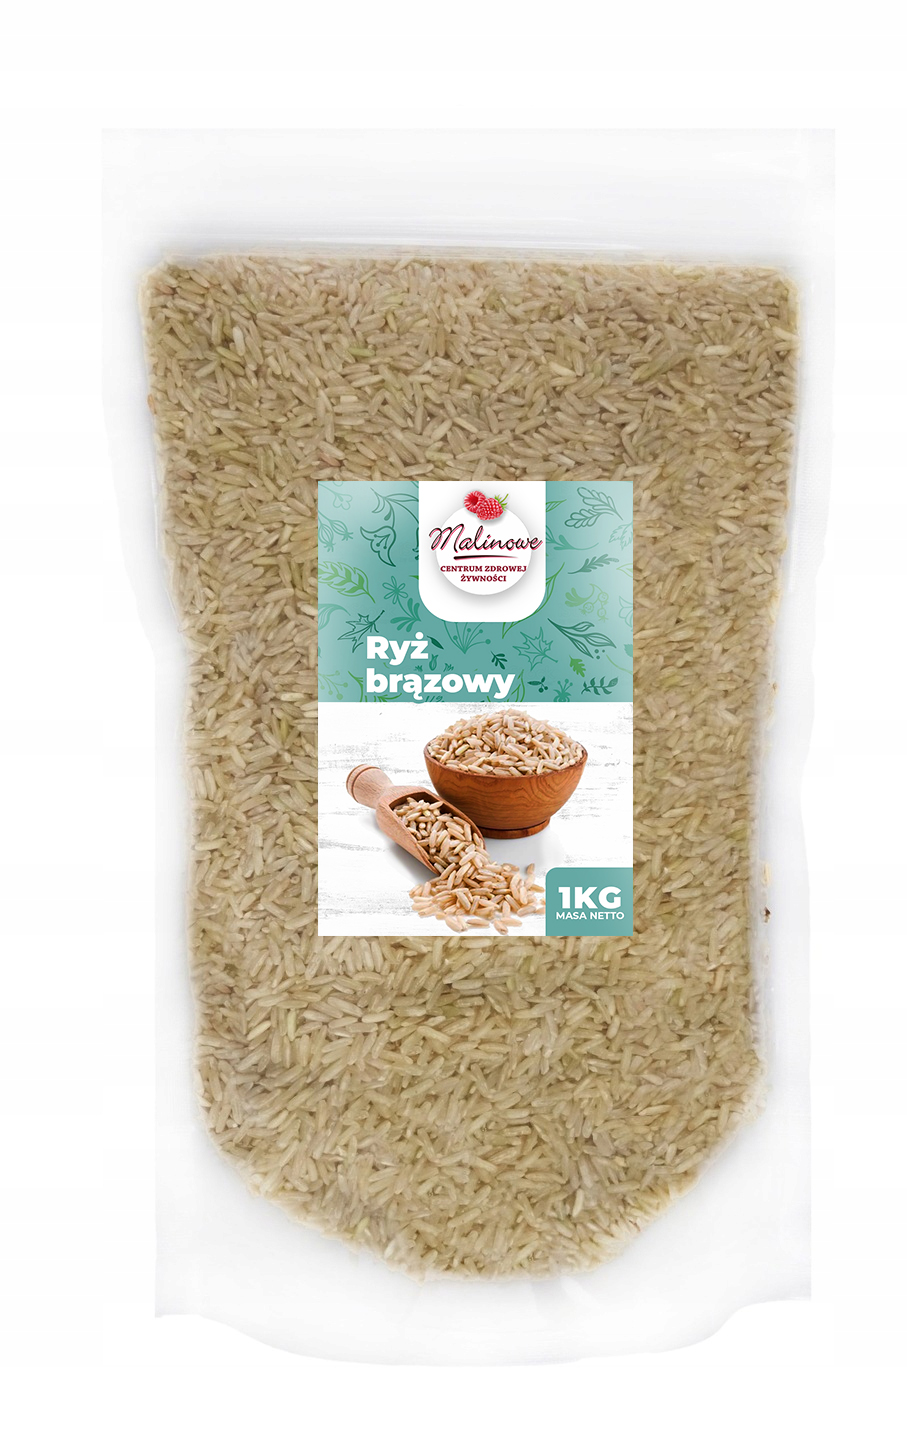 Item RICE BROWN 1kg NATURAL, HIGH QUALITY DIET